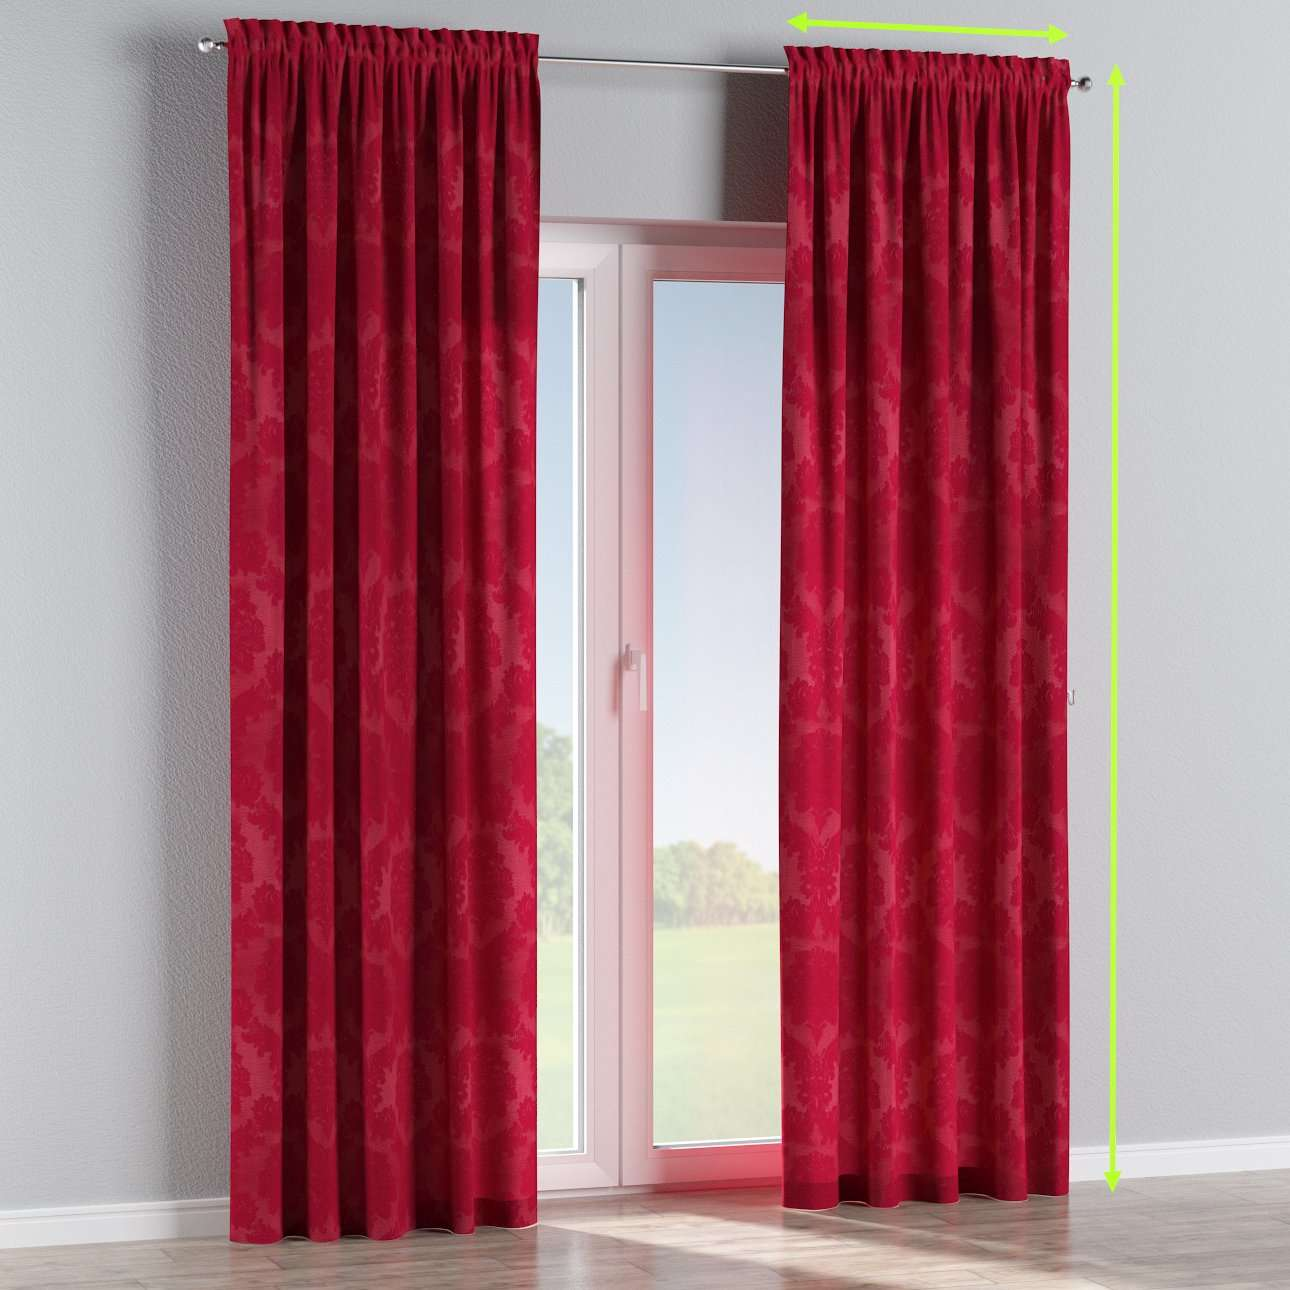 Slot and frill lined curtains in collection Damasco, fabric: 613-13